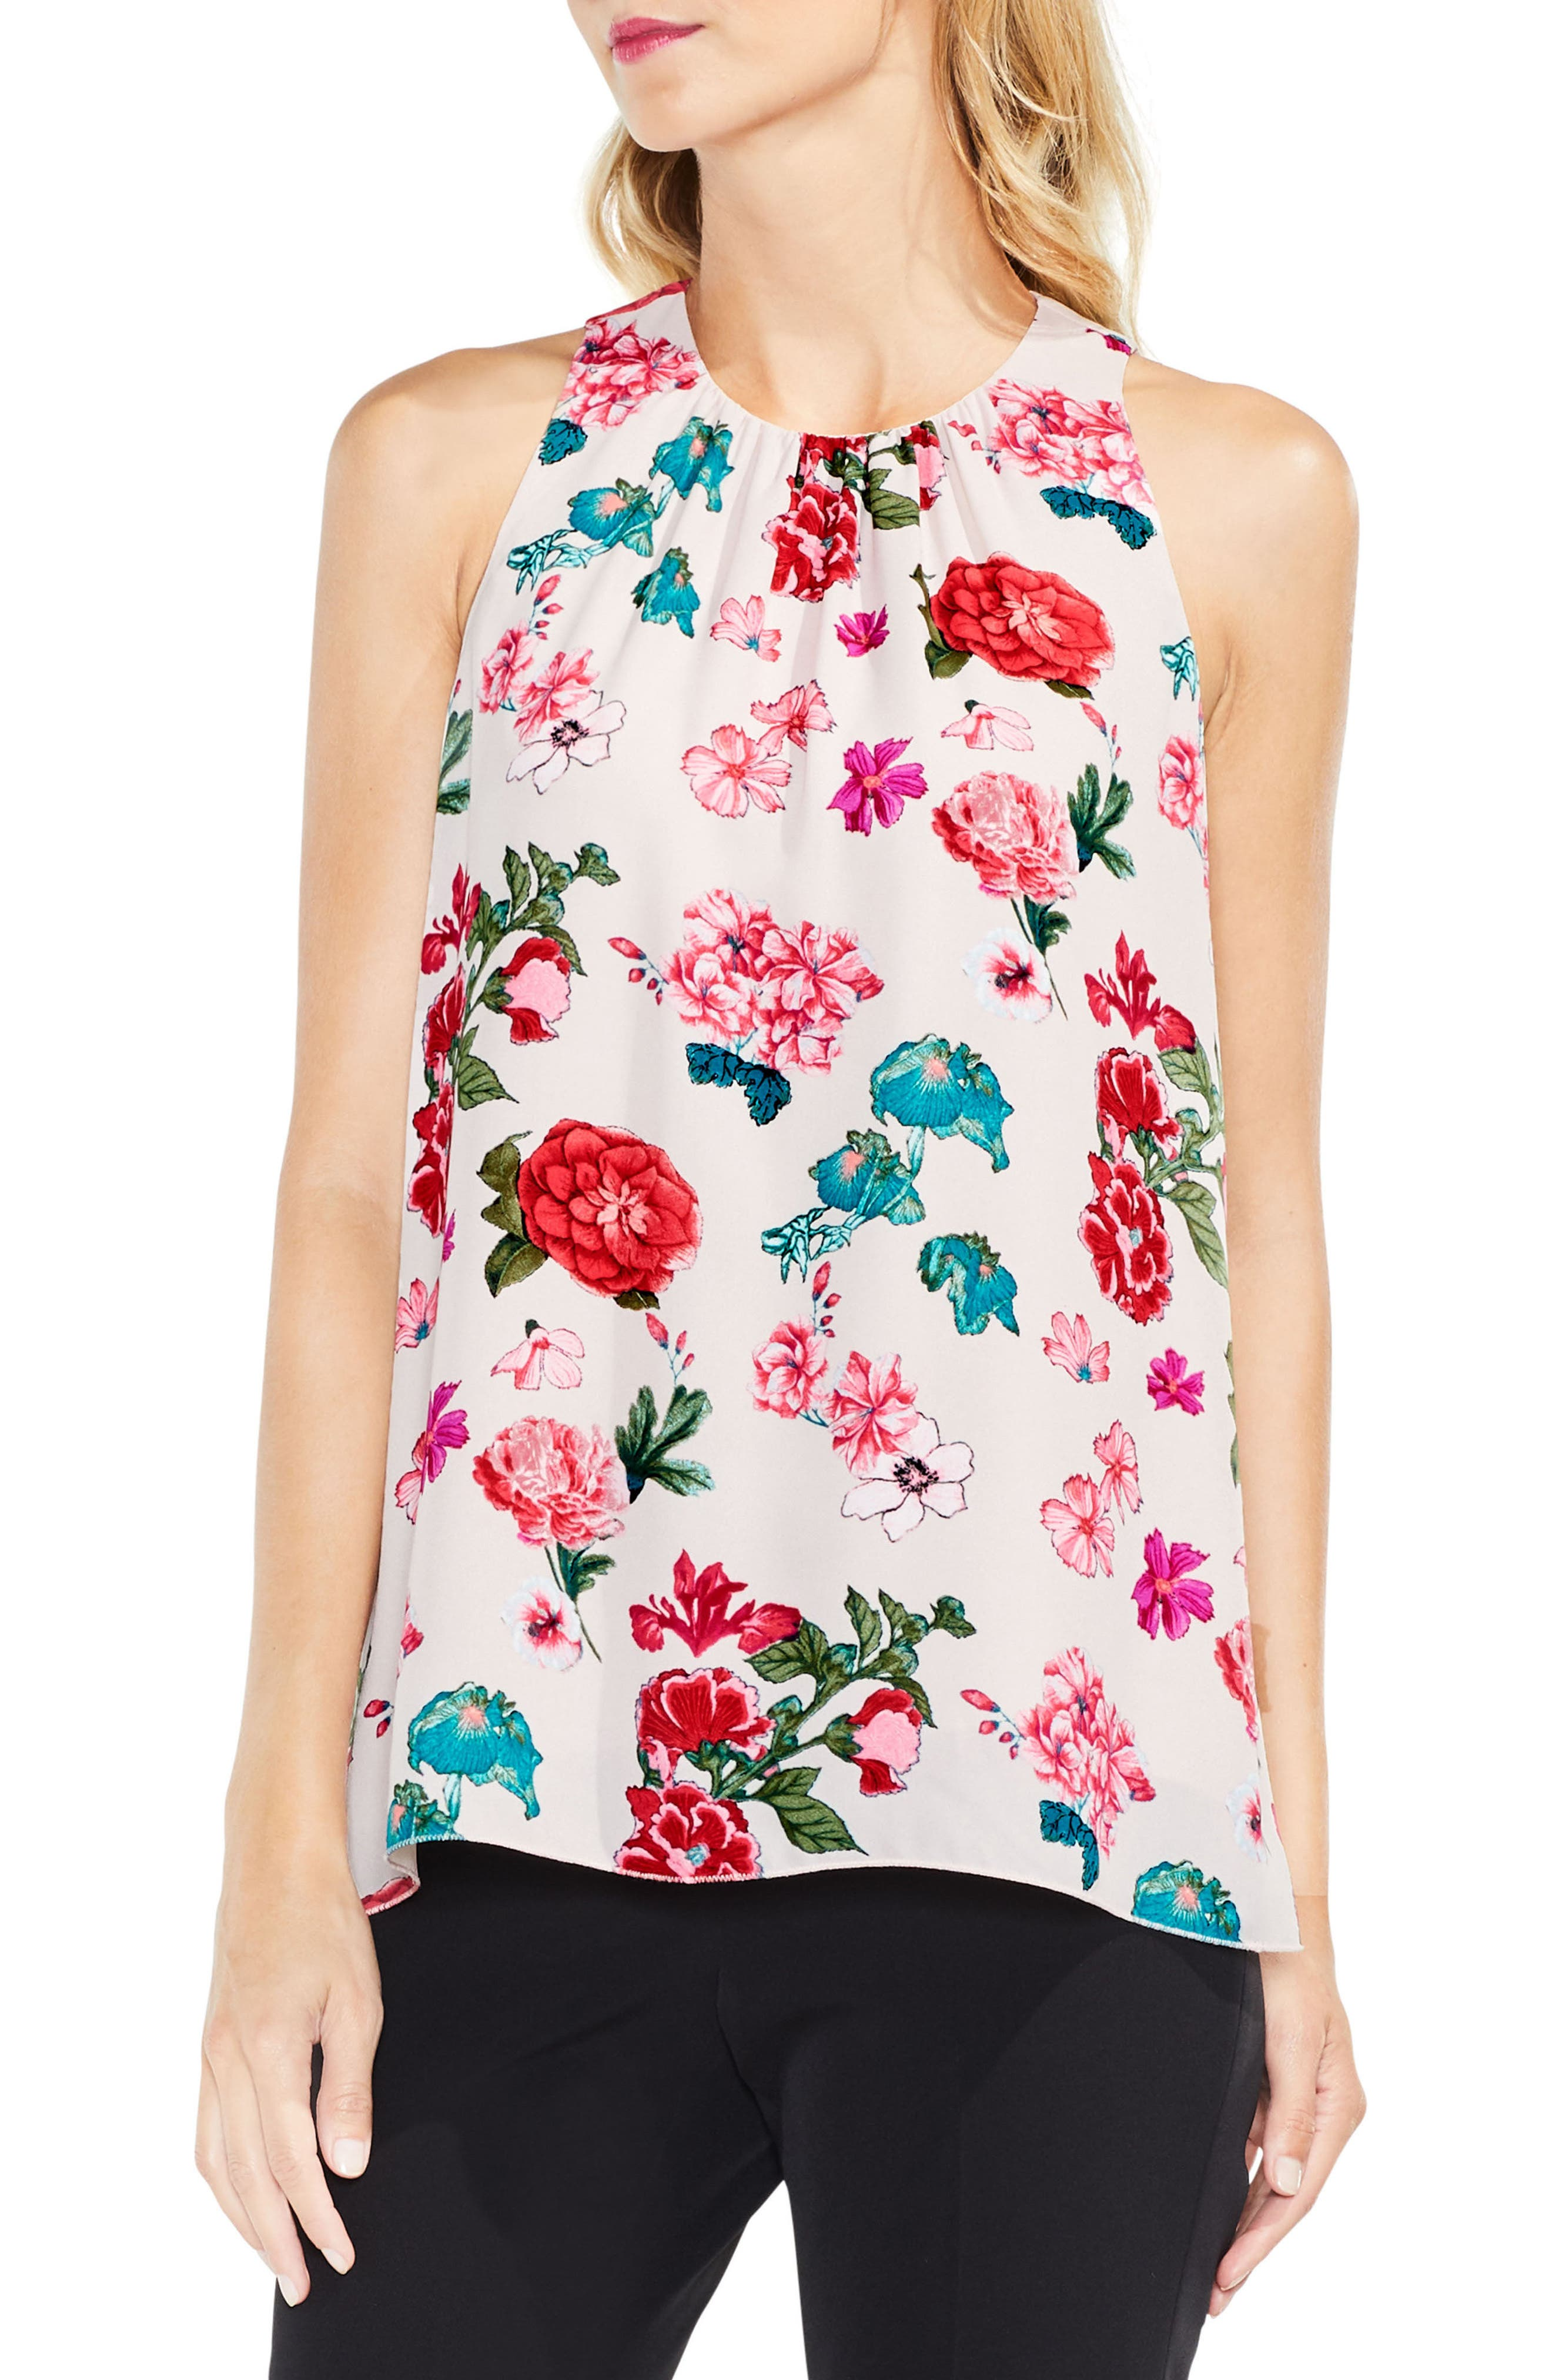 Alternate Image 1 Selected - Vince Camuto Floral Heirlooms Sleeveless Blouse